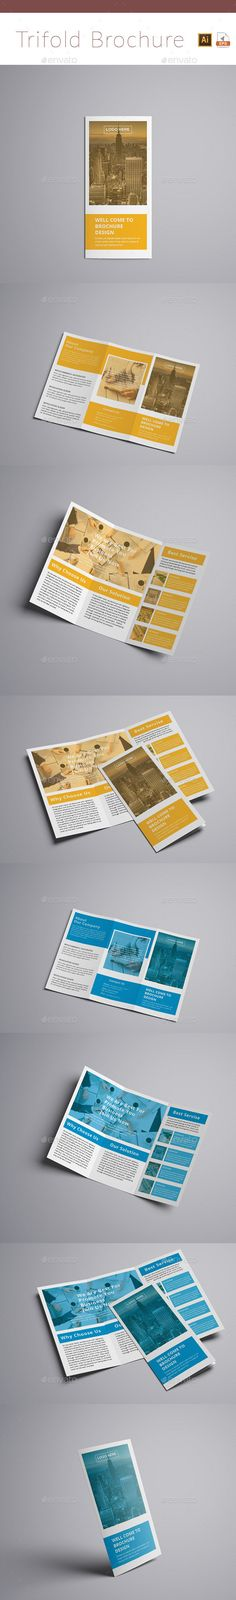 #corporate #Trifold #Brochure #template - #business #Brochures #Print #design. download here: https://graphicriver.net/item/trifold-brochure/19928584?ref=yinkira